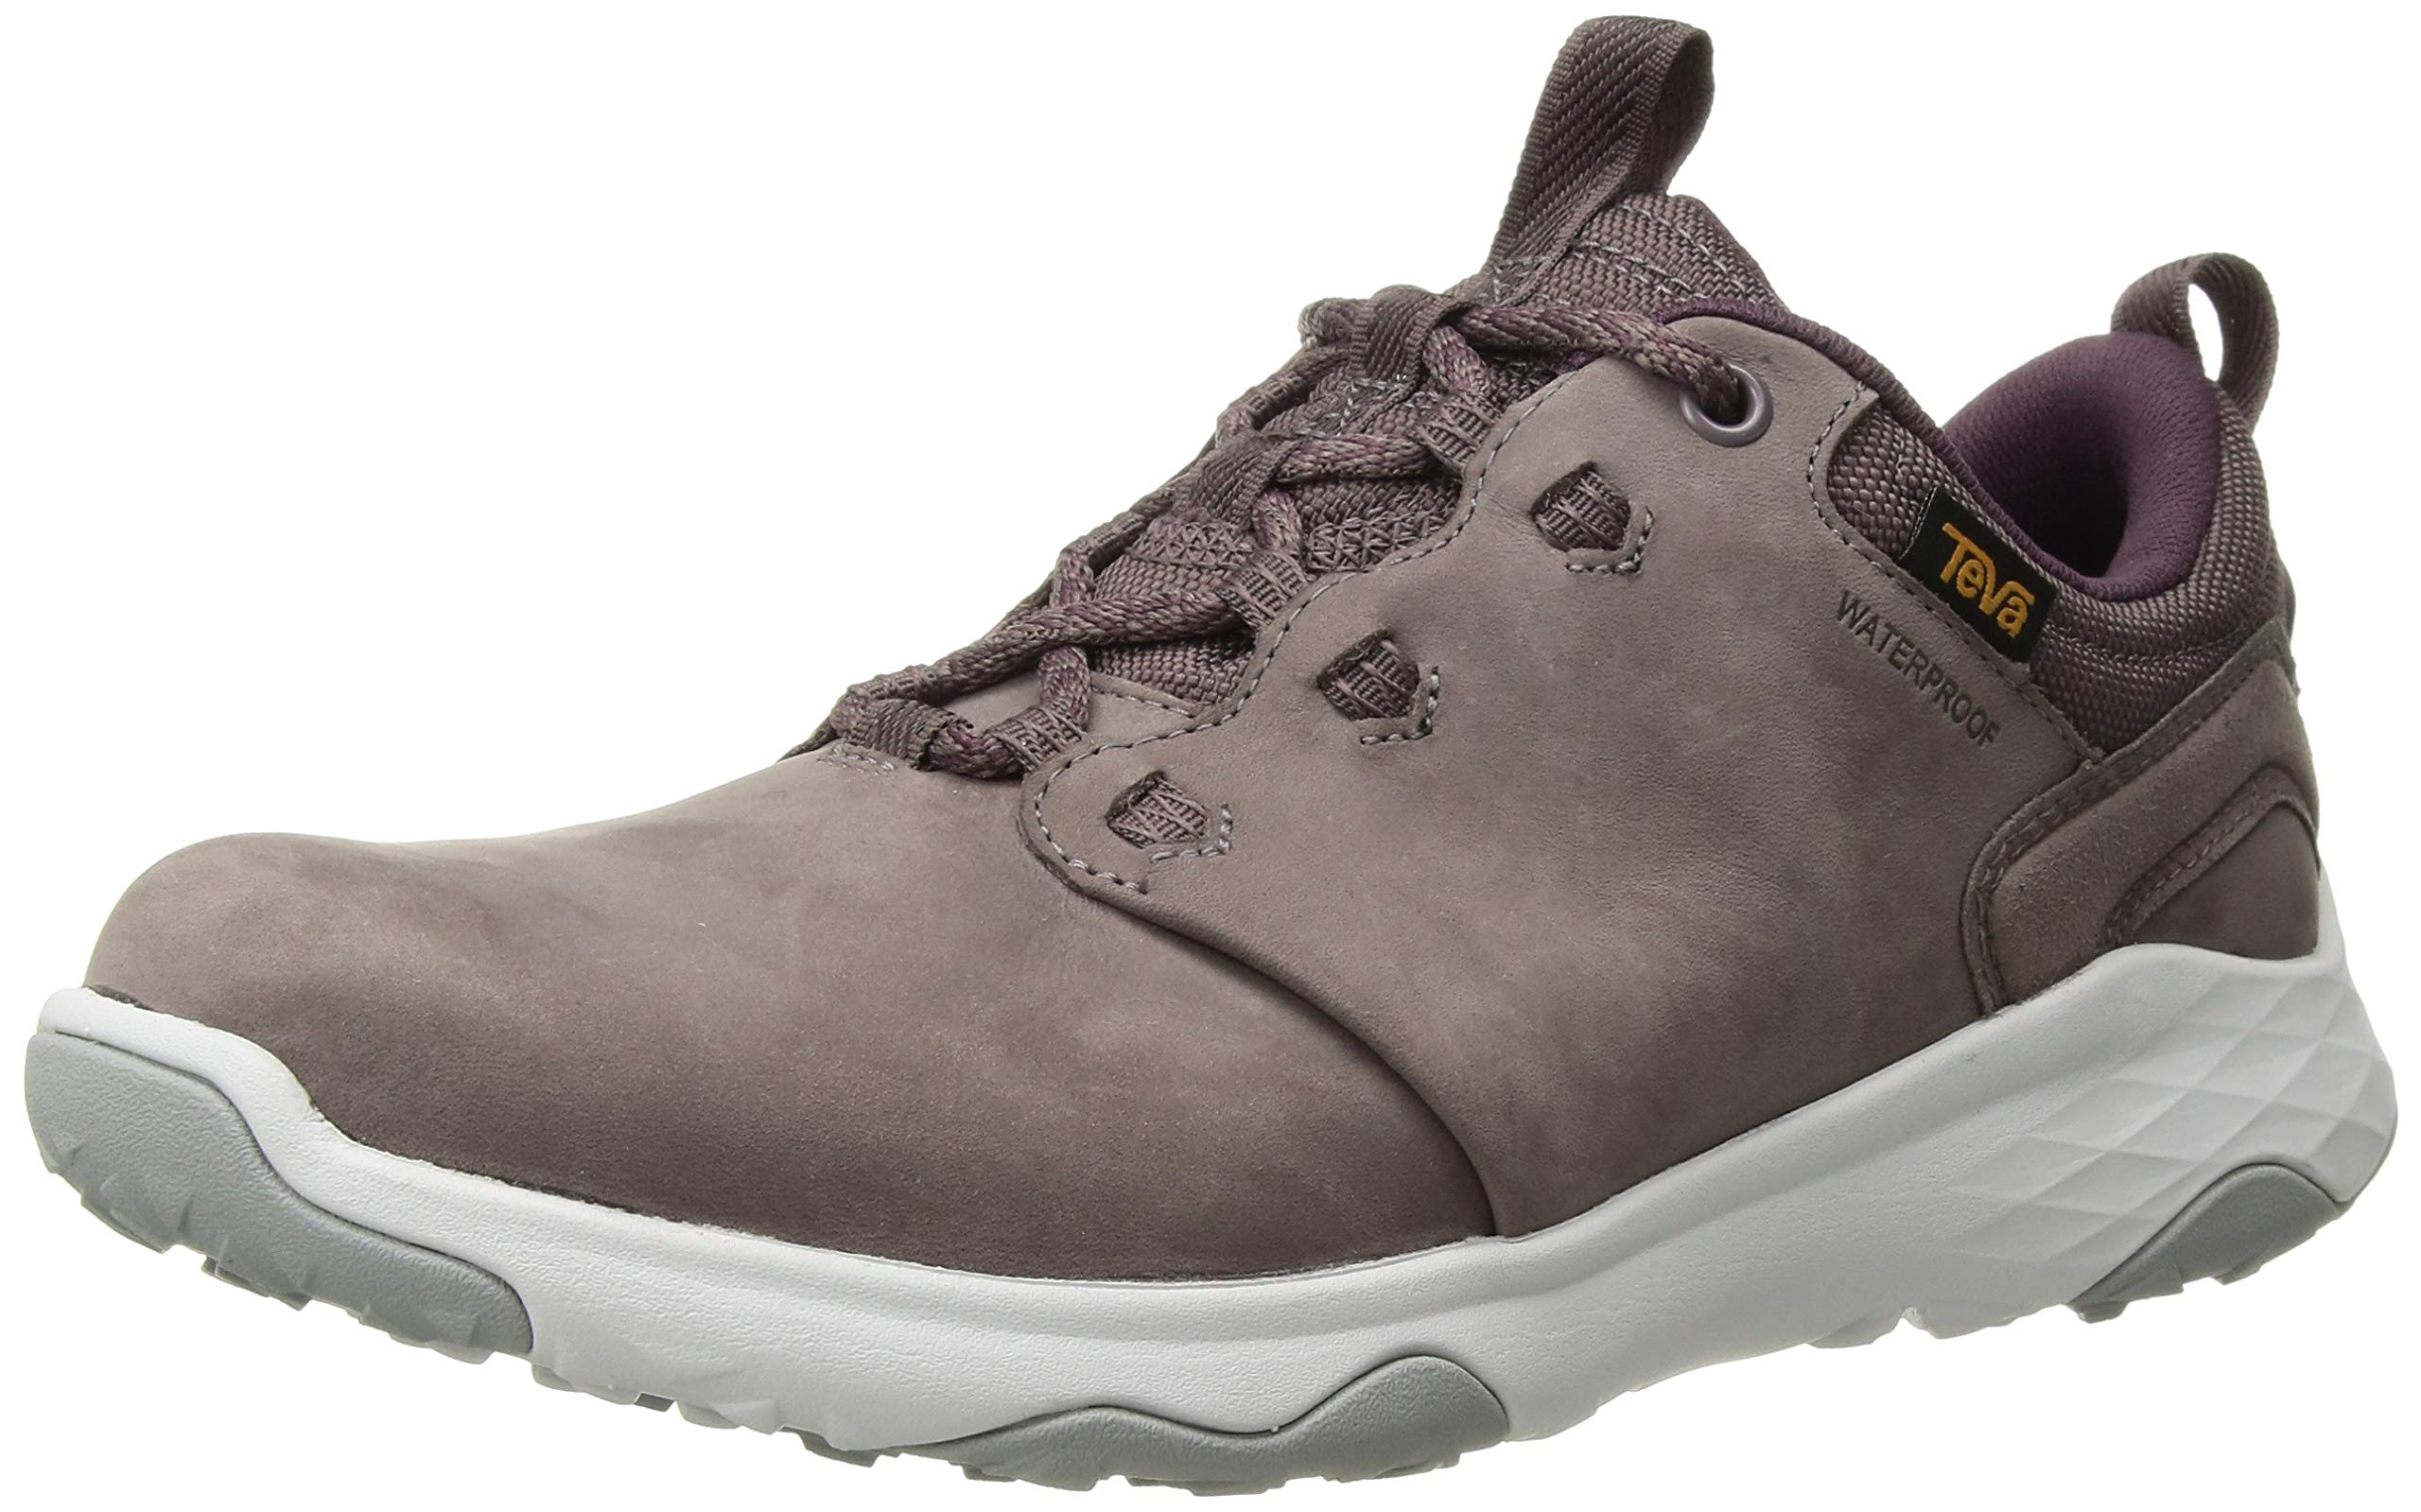 Teva Women's W Arrowood 2 Waterproof Hiking Shoe, Plum Truffle, 07 M US by Teva